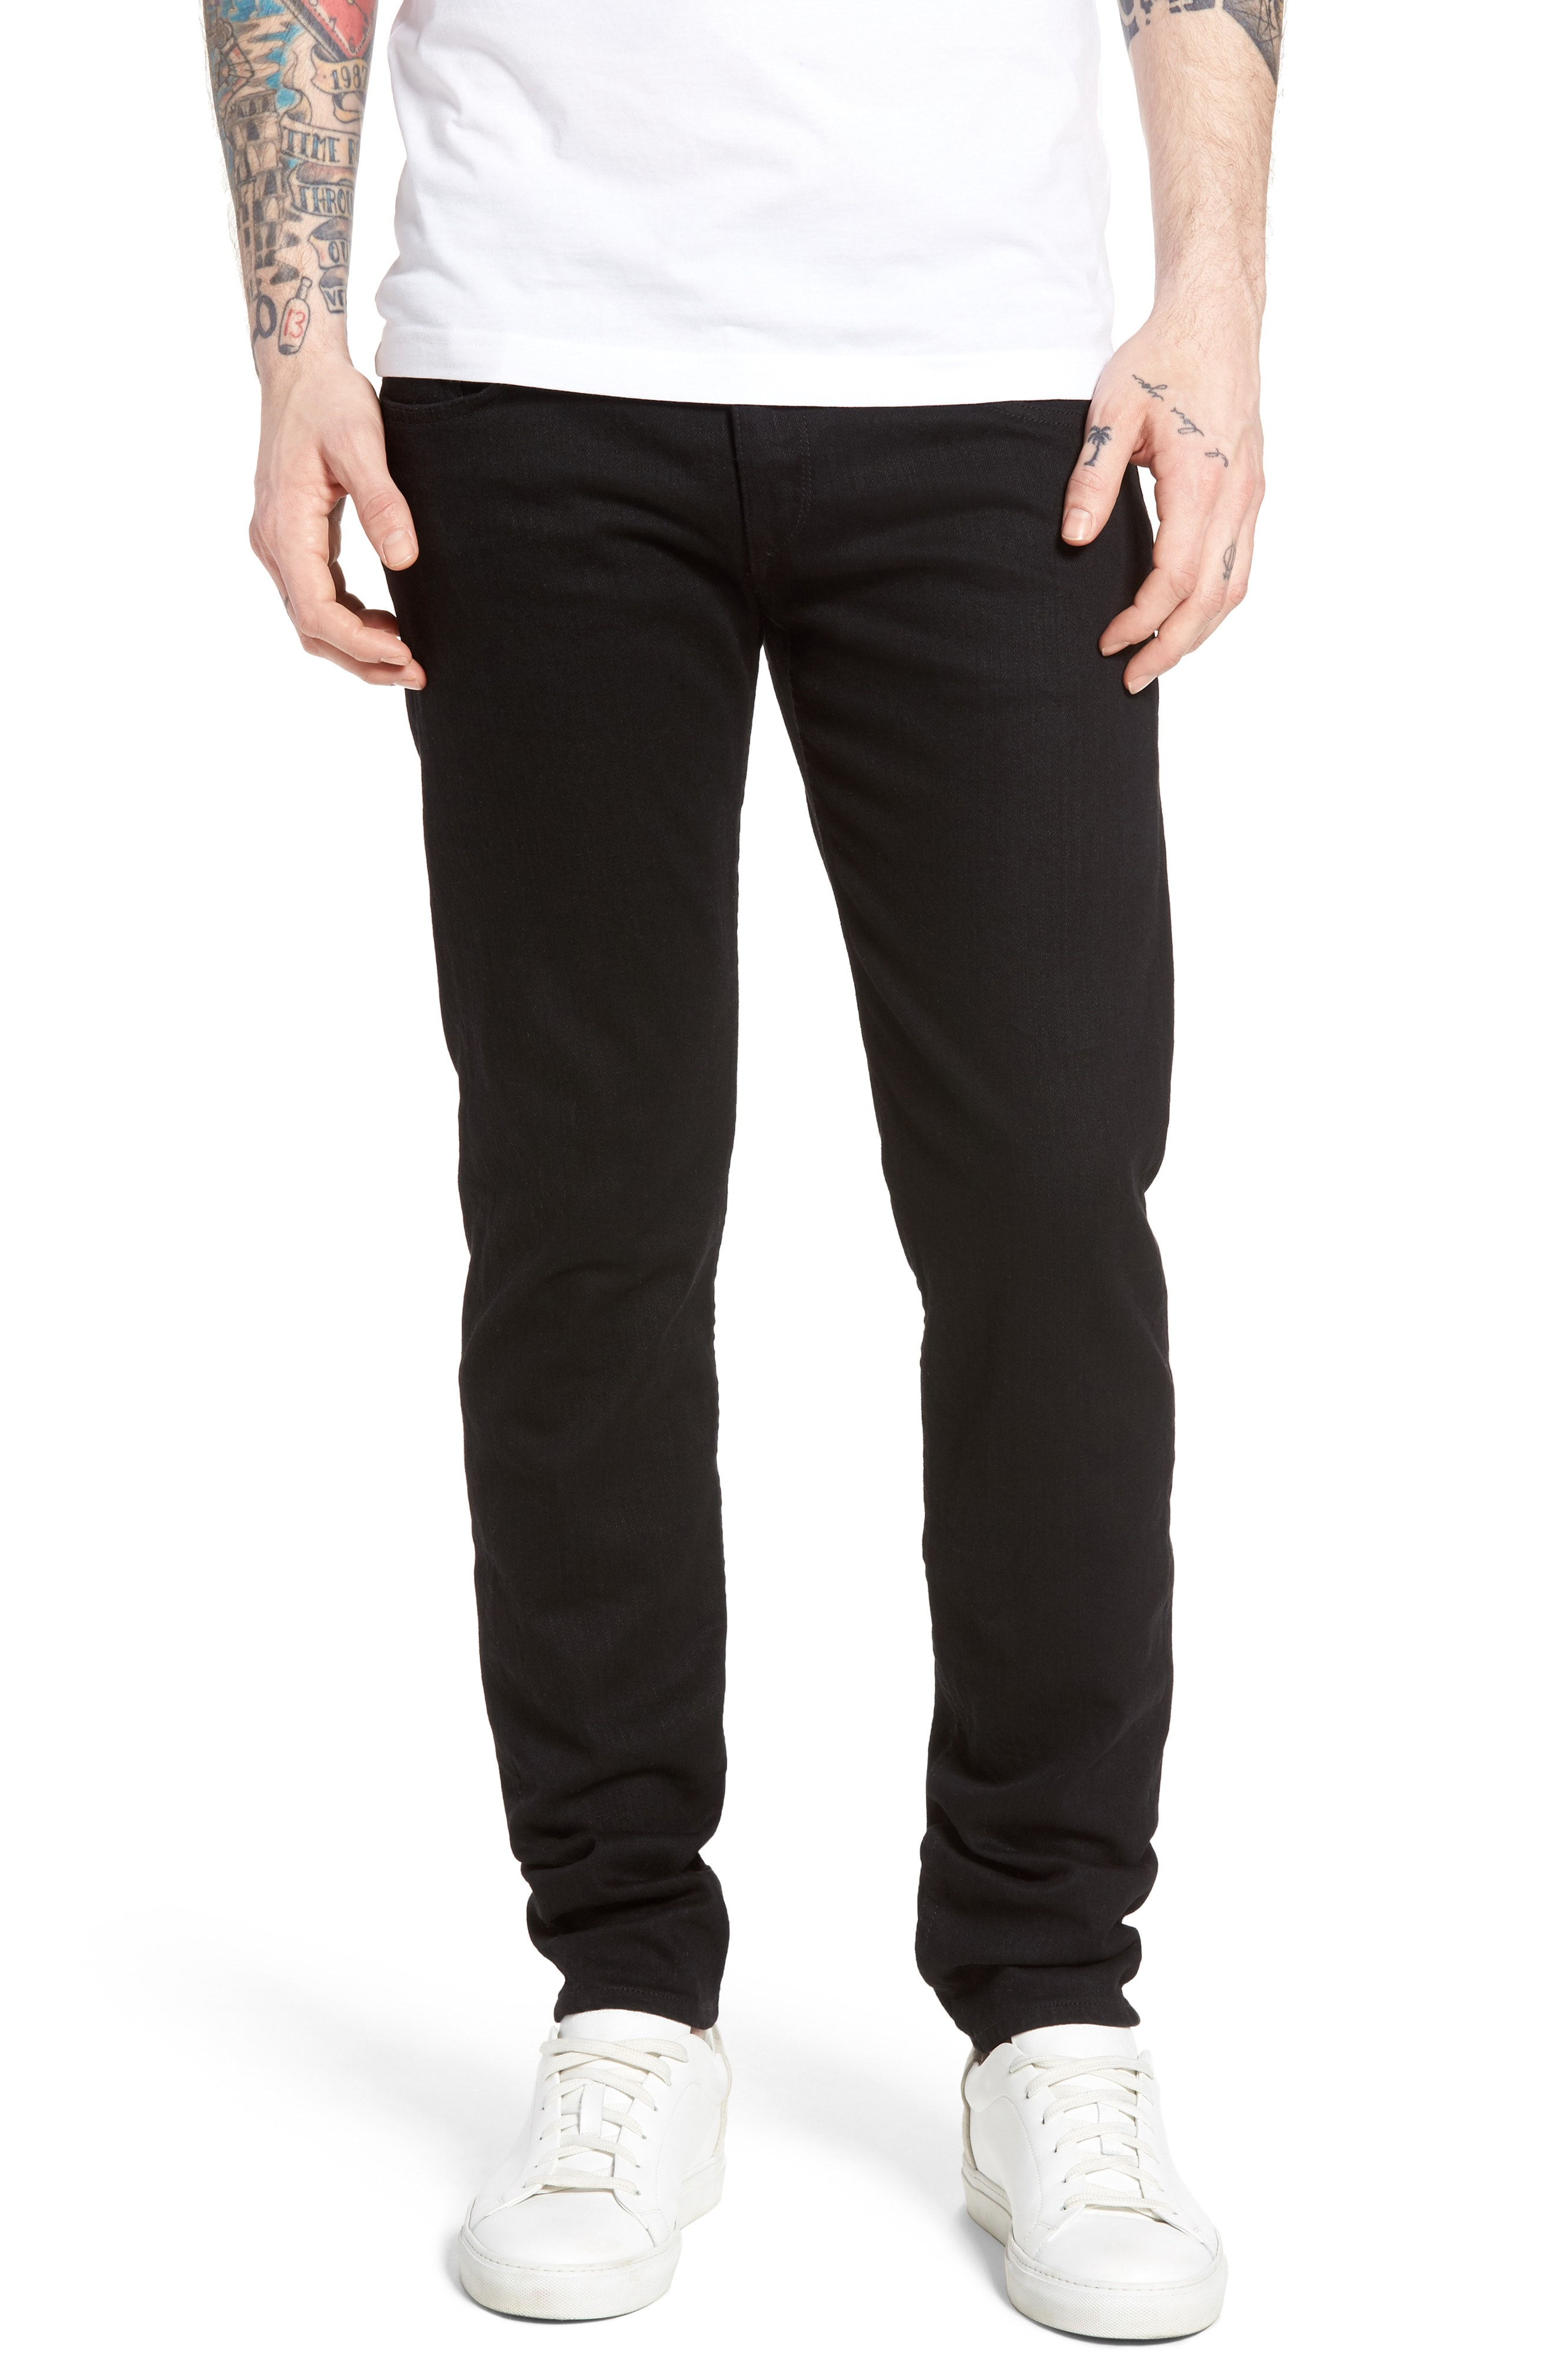 Men's Black Wash Jeans | Nordstrom